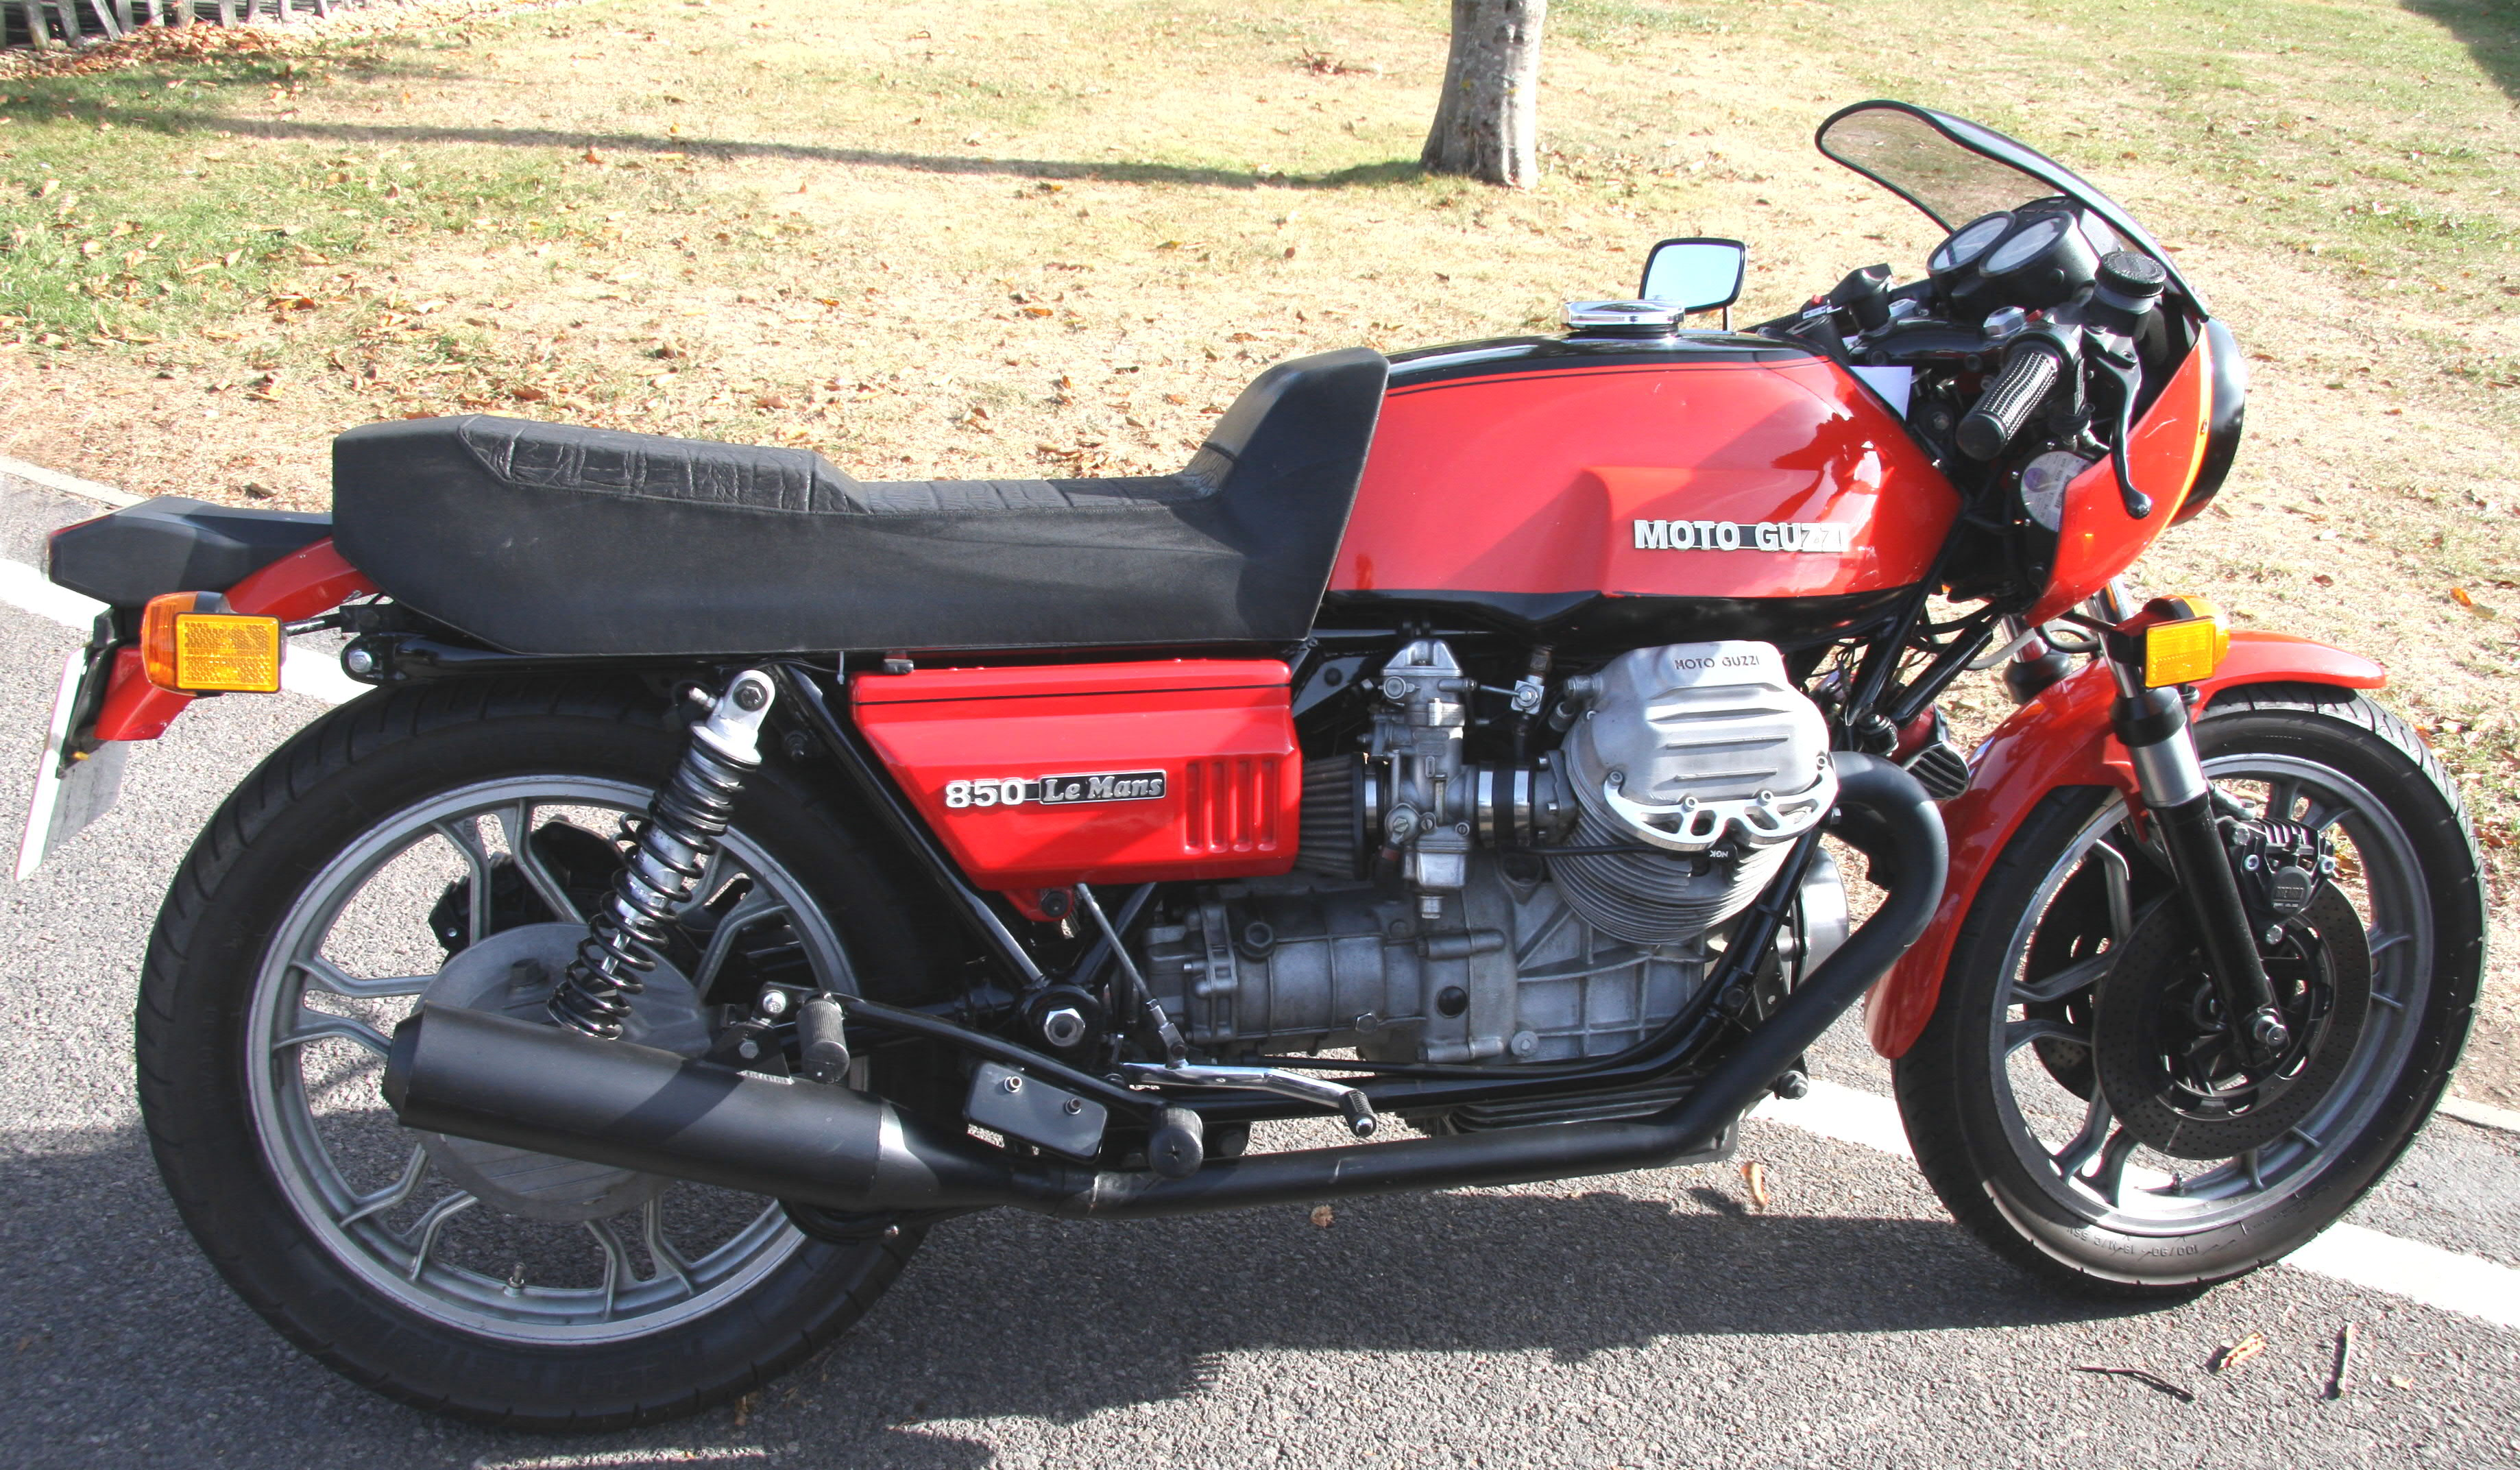 Moto Guzzi Quota 1100 ES 1998 images #145184